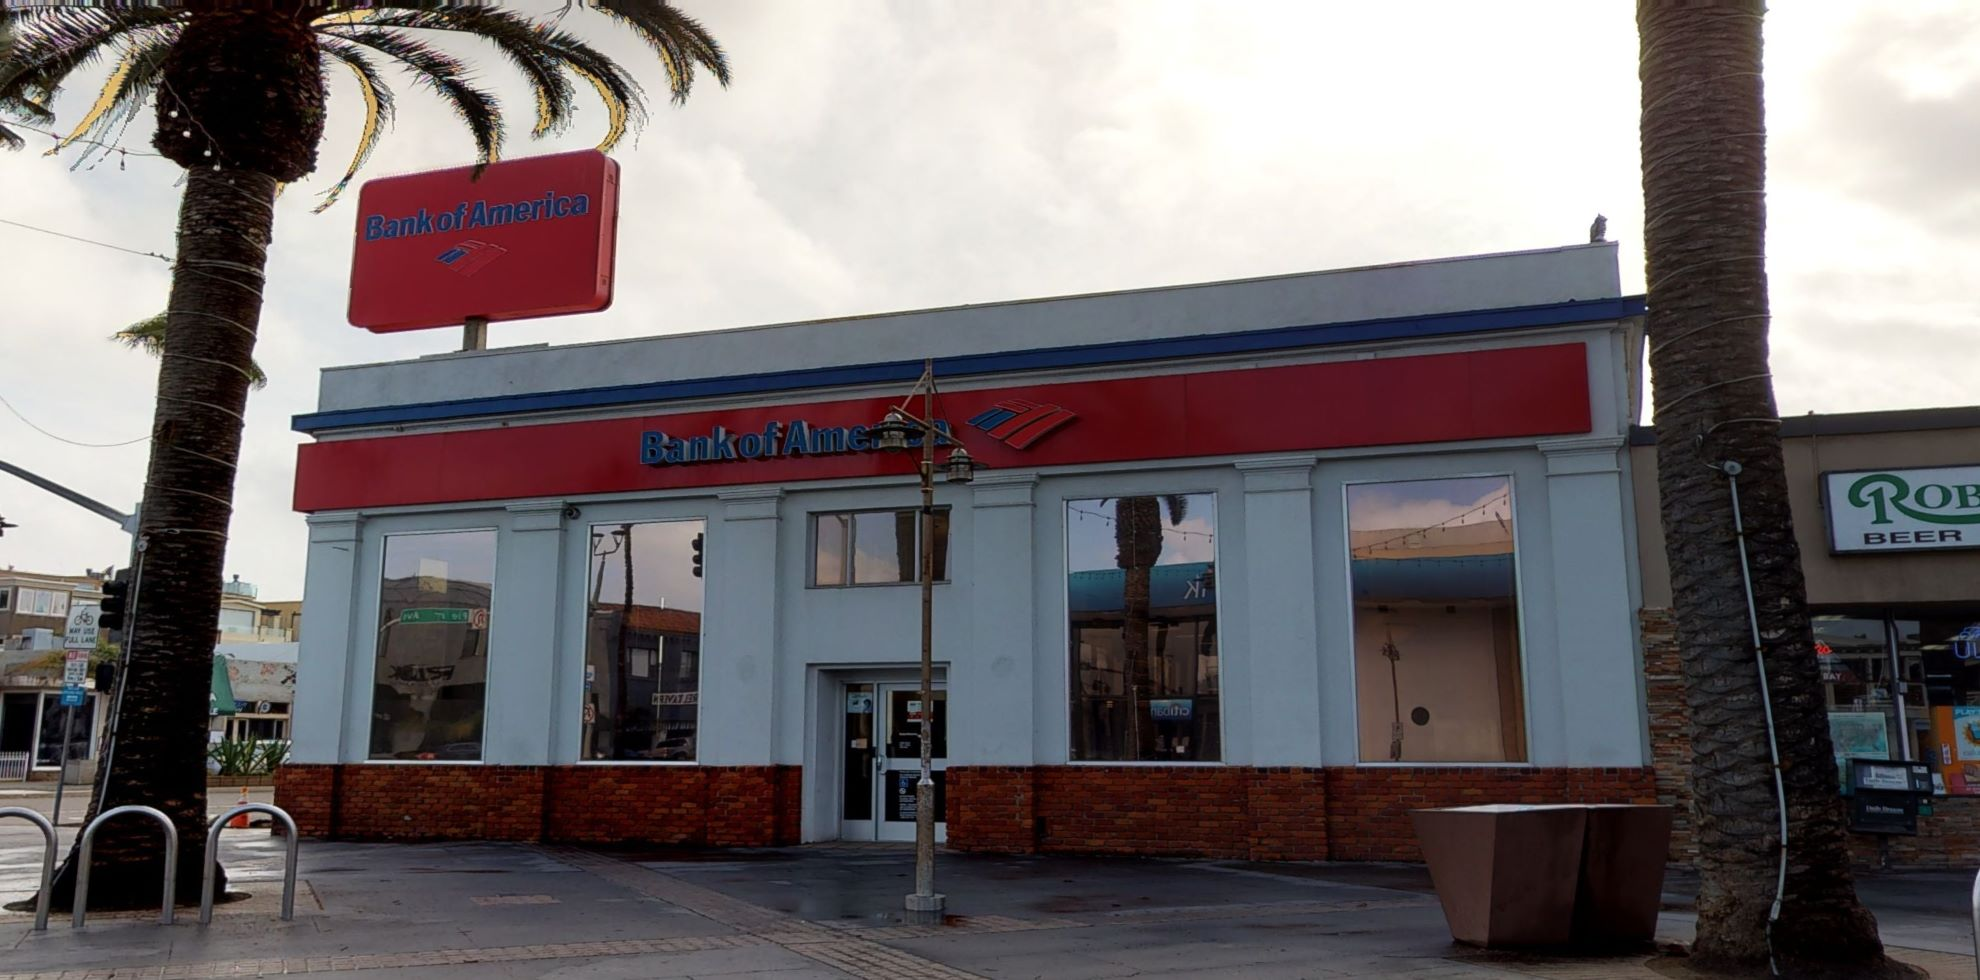 Bank of America financial center with walk-up ATM   90 Pier Ave, Hermosa Beach, CA 90254